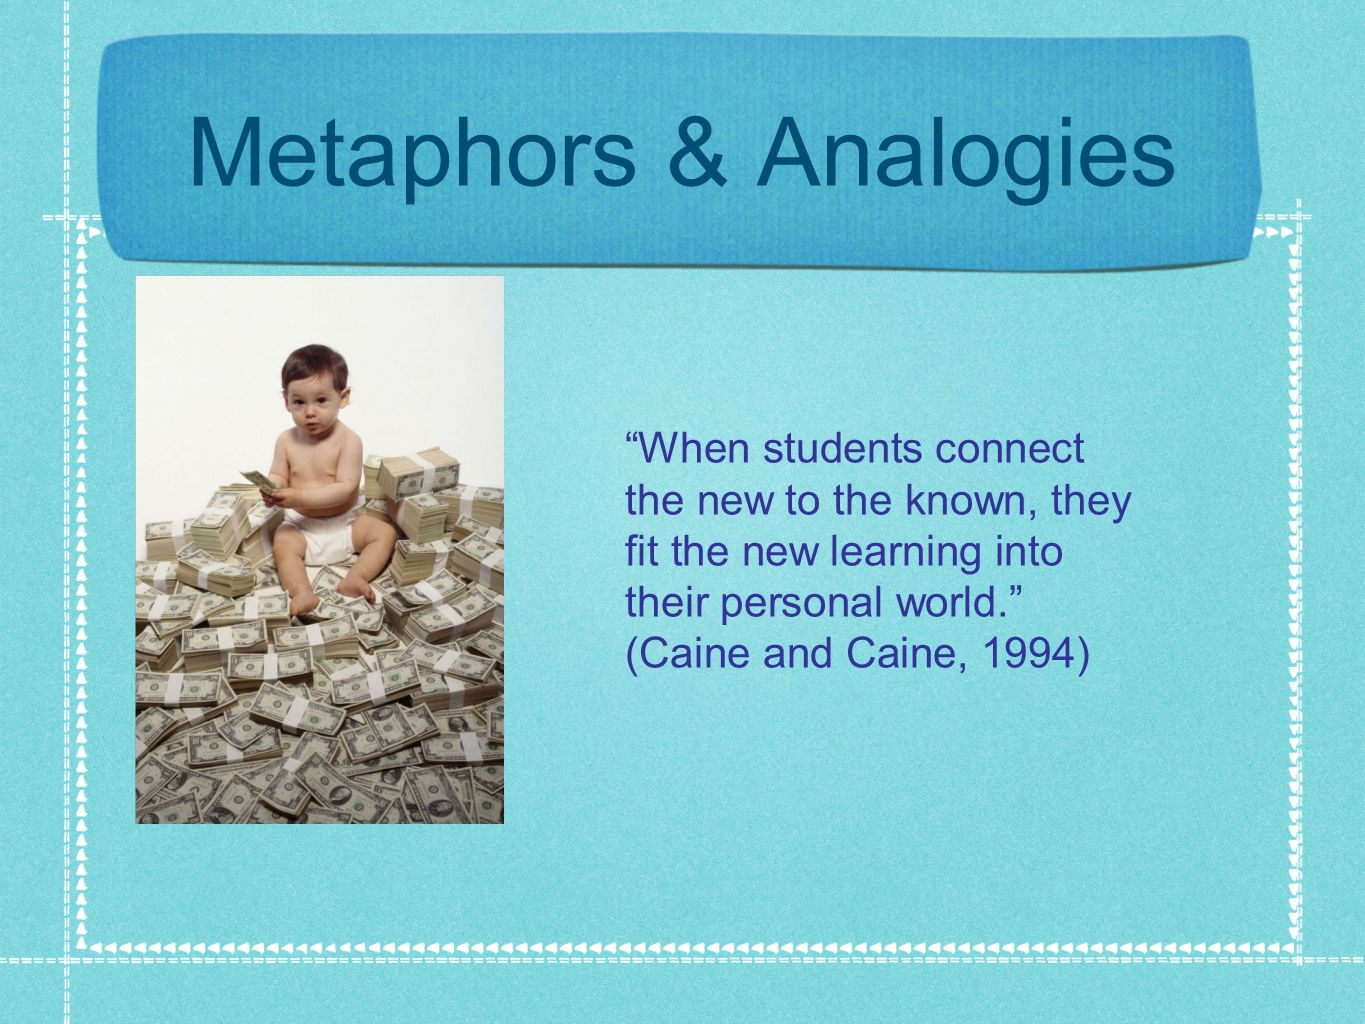 Metaphors & Analogies When students connect the new to the known, they fit the new learning into their personal world. (Caine and Caine, 1994)